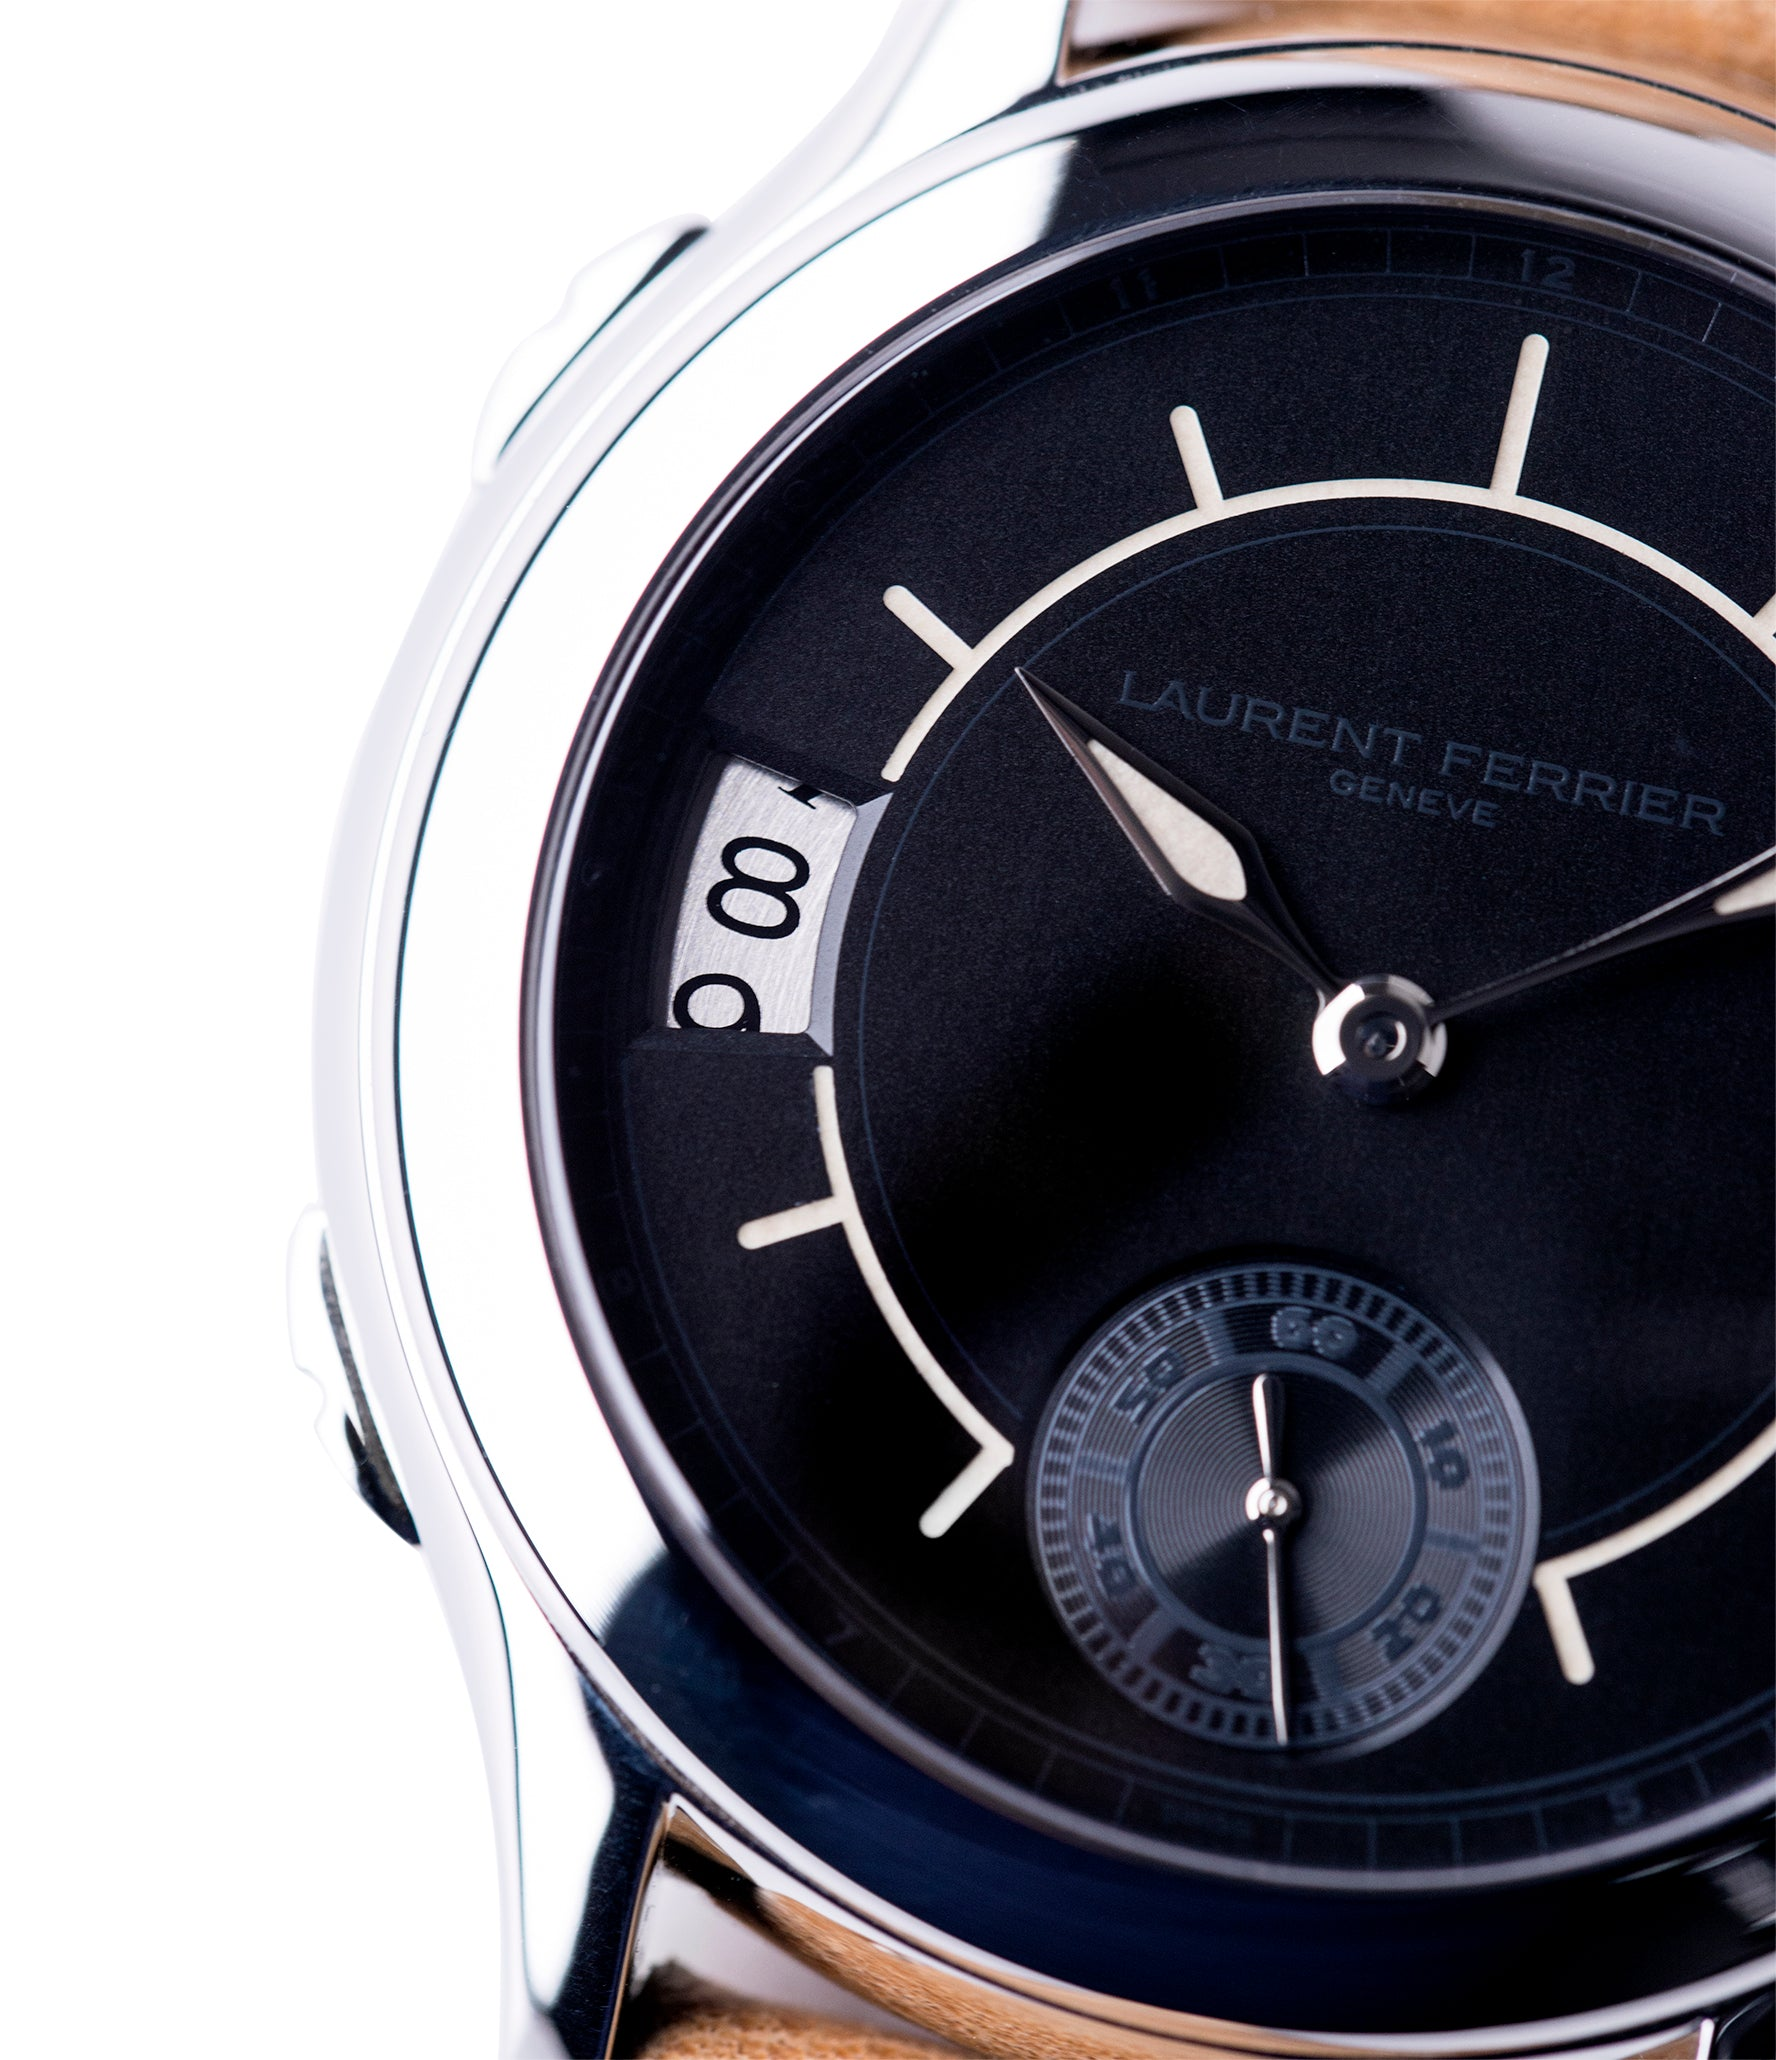 sector dial Laurent Ferrier Galet Traveller Boreal steel dual-timezone black dial dress watch for sale online at A Collected Man London approved seller of pre-owned Laurent Ferrier independent watchmakers